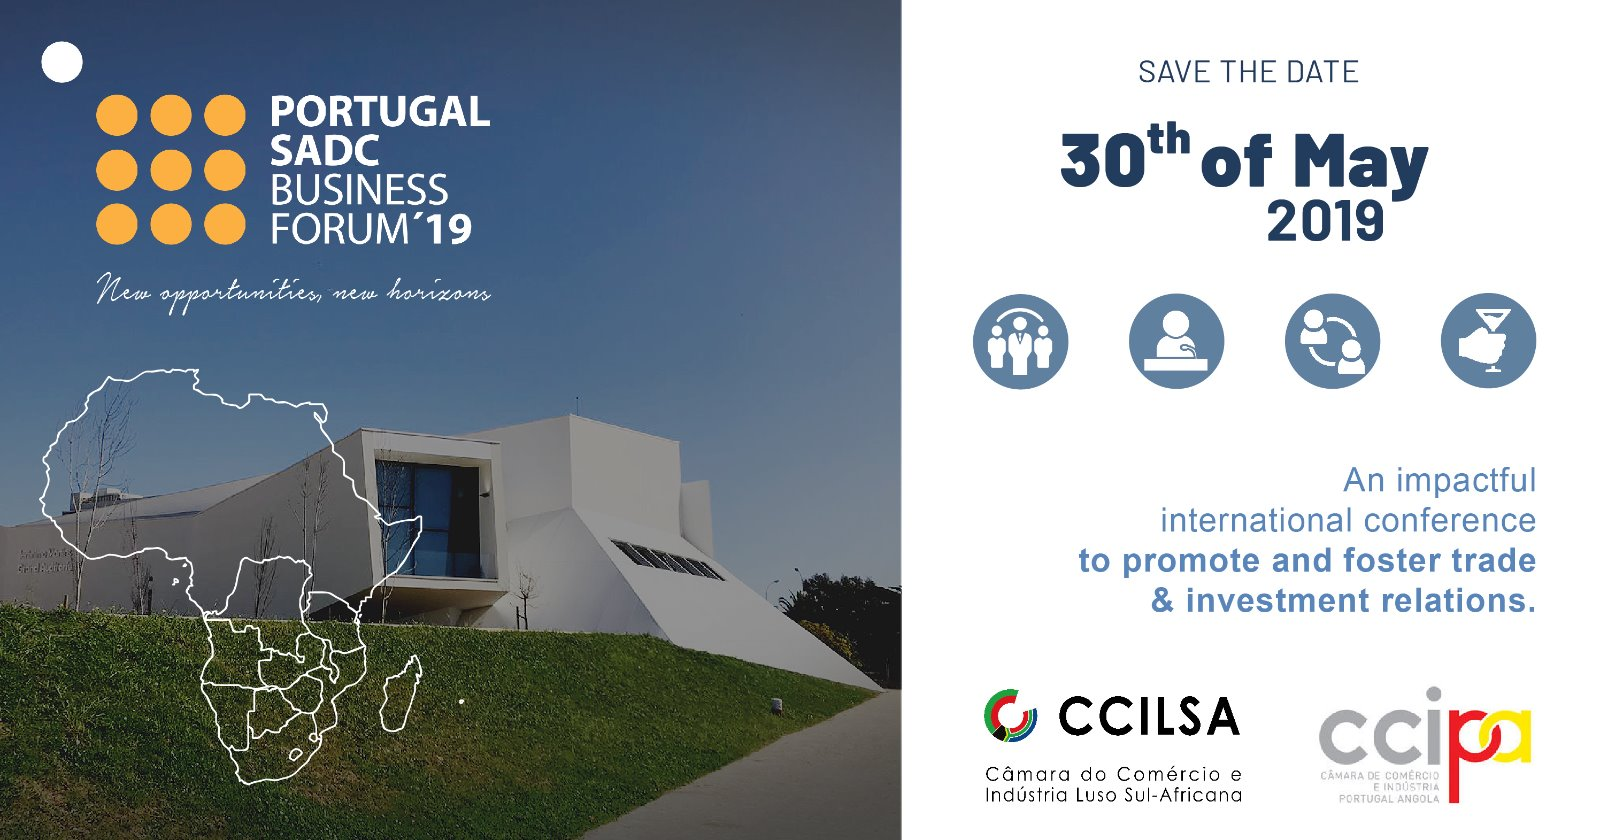 Portugal SADC Business Forum'19